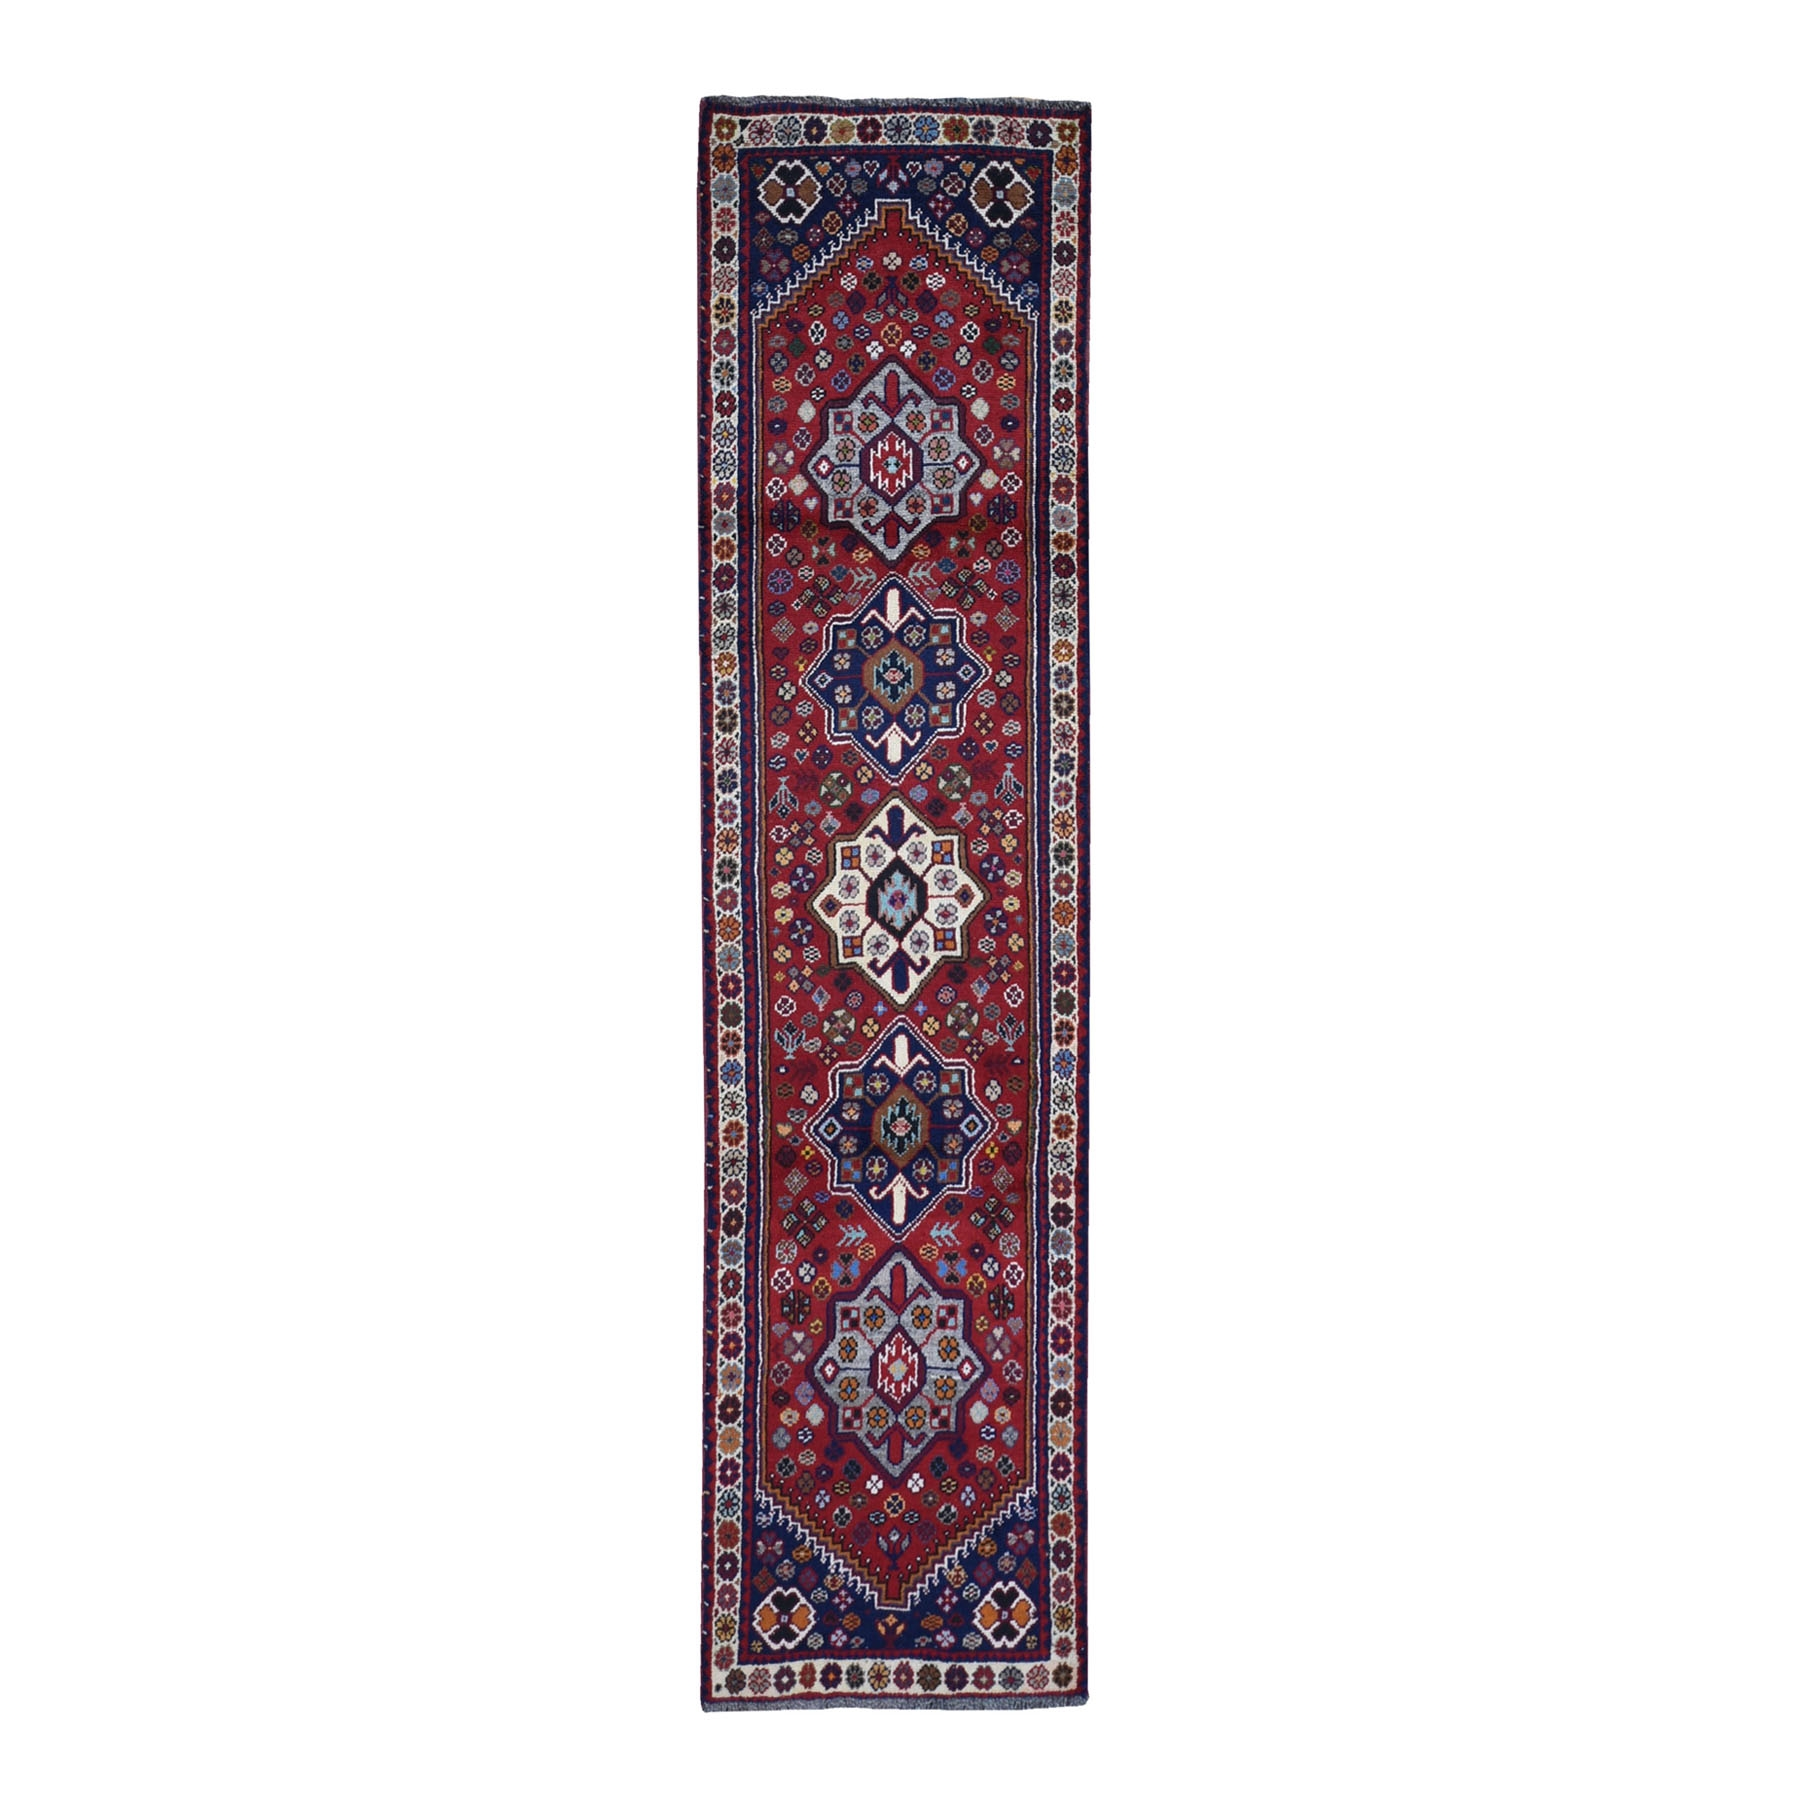 "2'4""x9'5"" Red New Persian Shiraz Pure Wool Dense Weave Hand Woven Runner Oriental Rug"